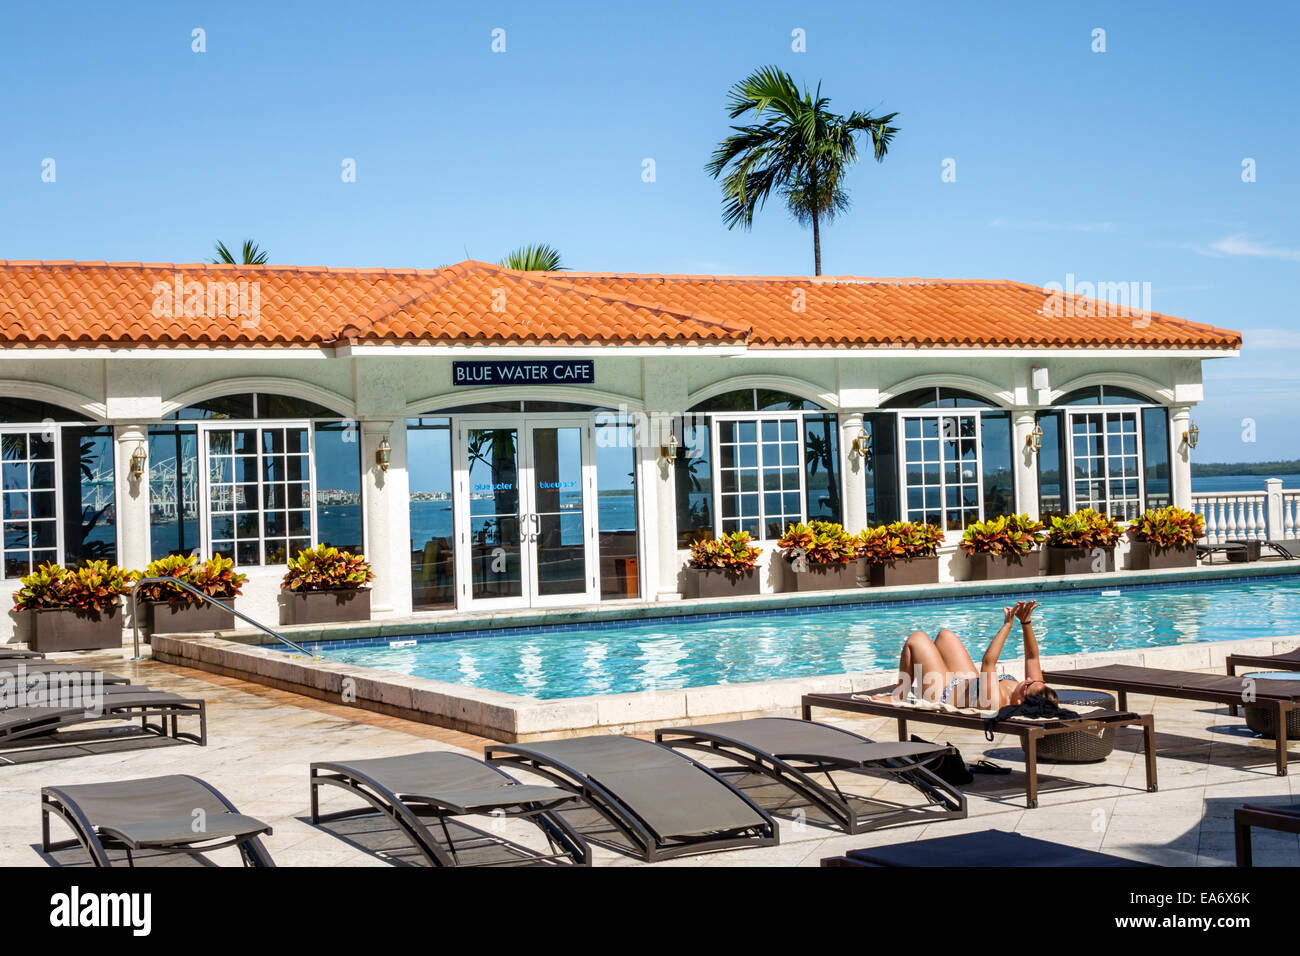 Miami Florida Intercontinental Hotel Swimming Pool Area Lounge Chairs Blue  Water Cafe